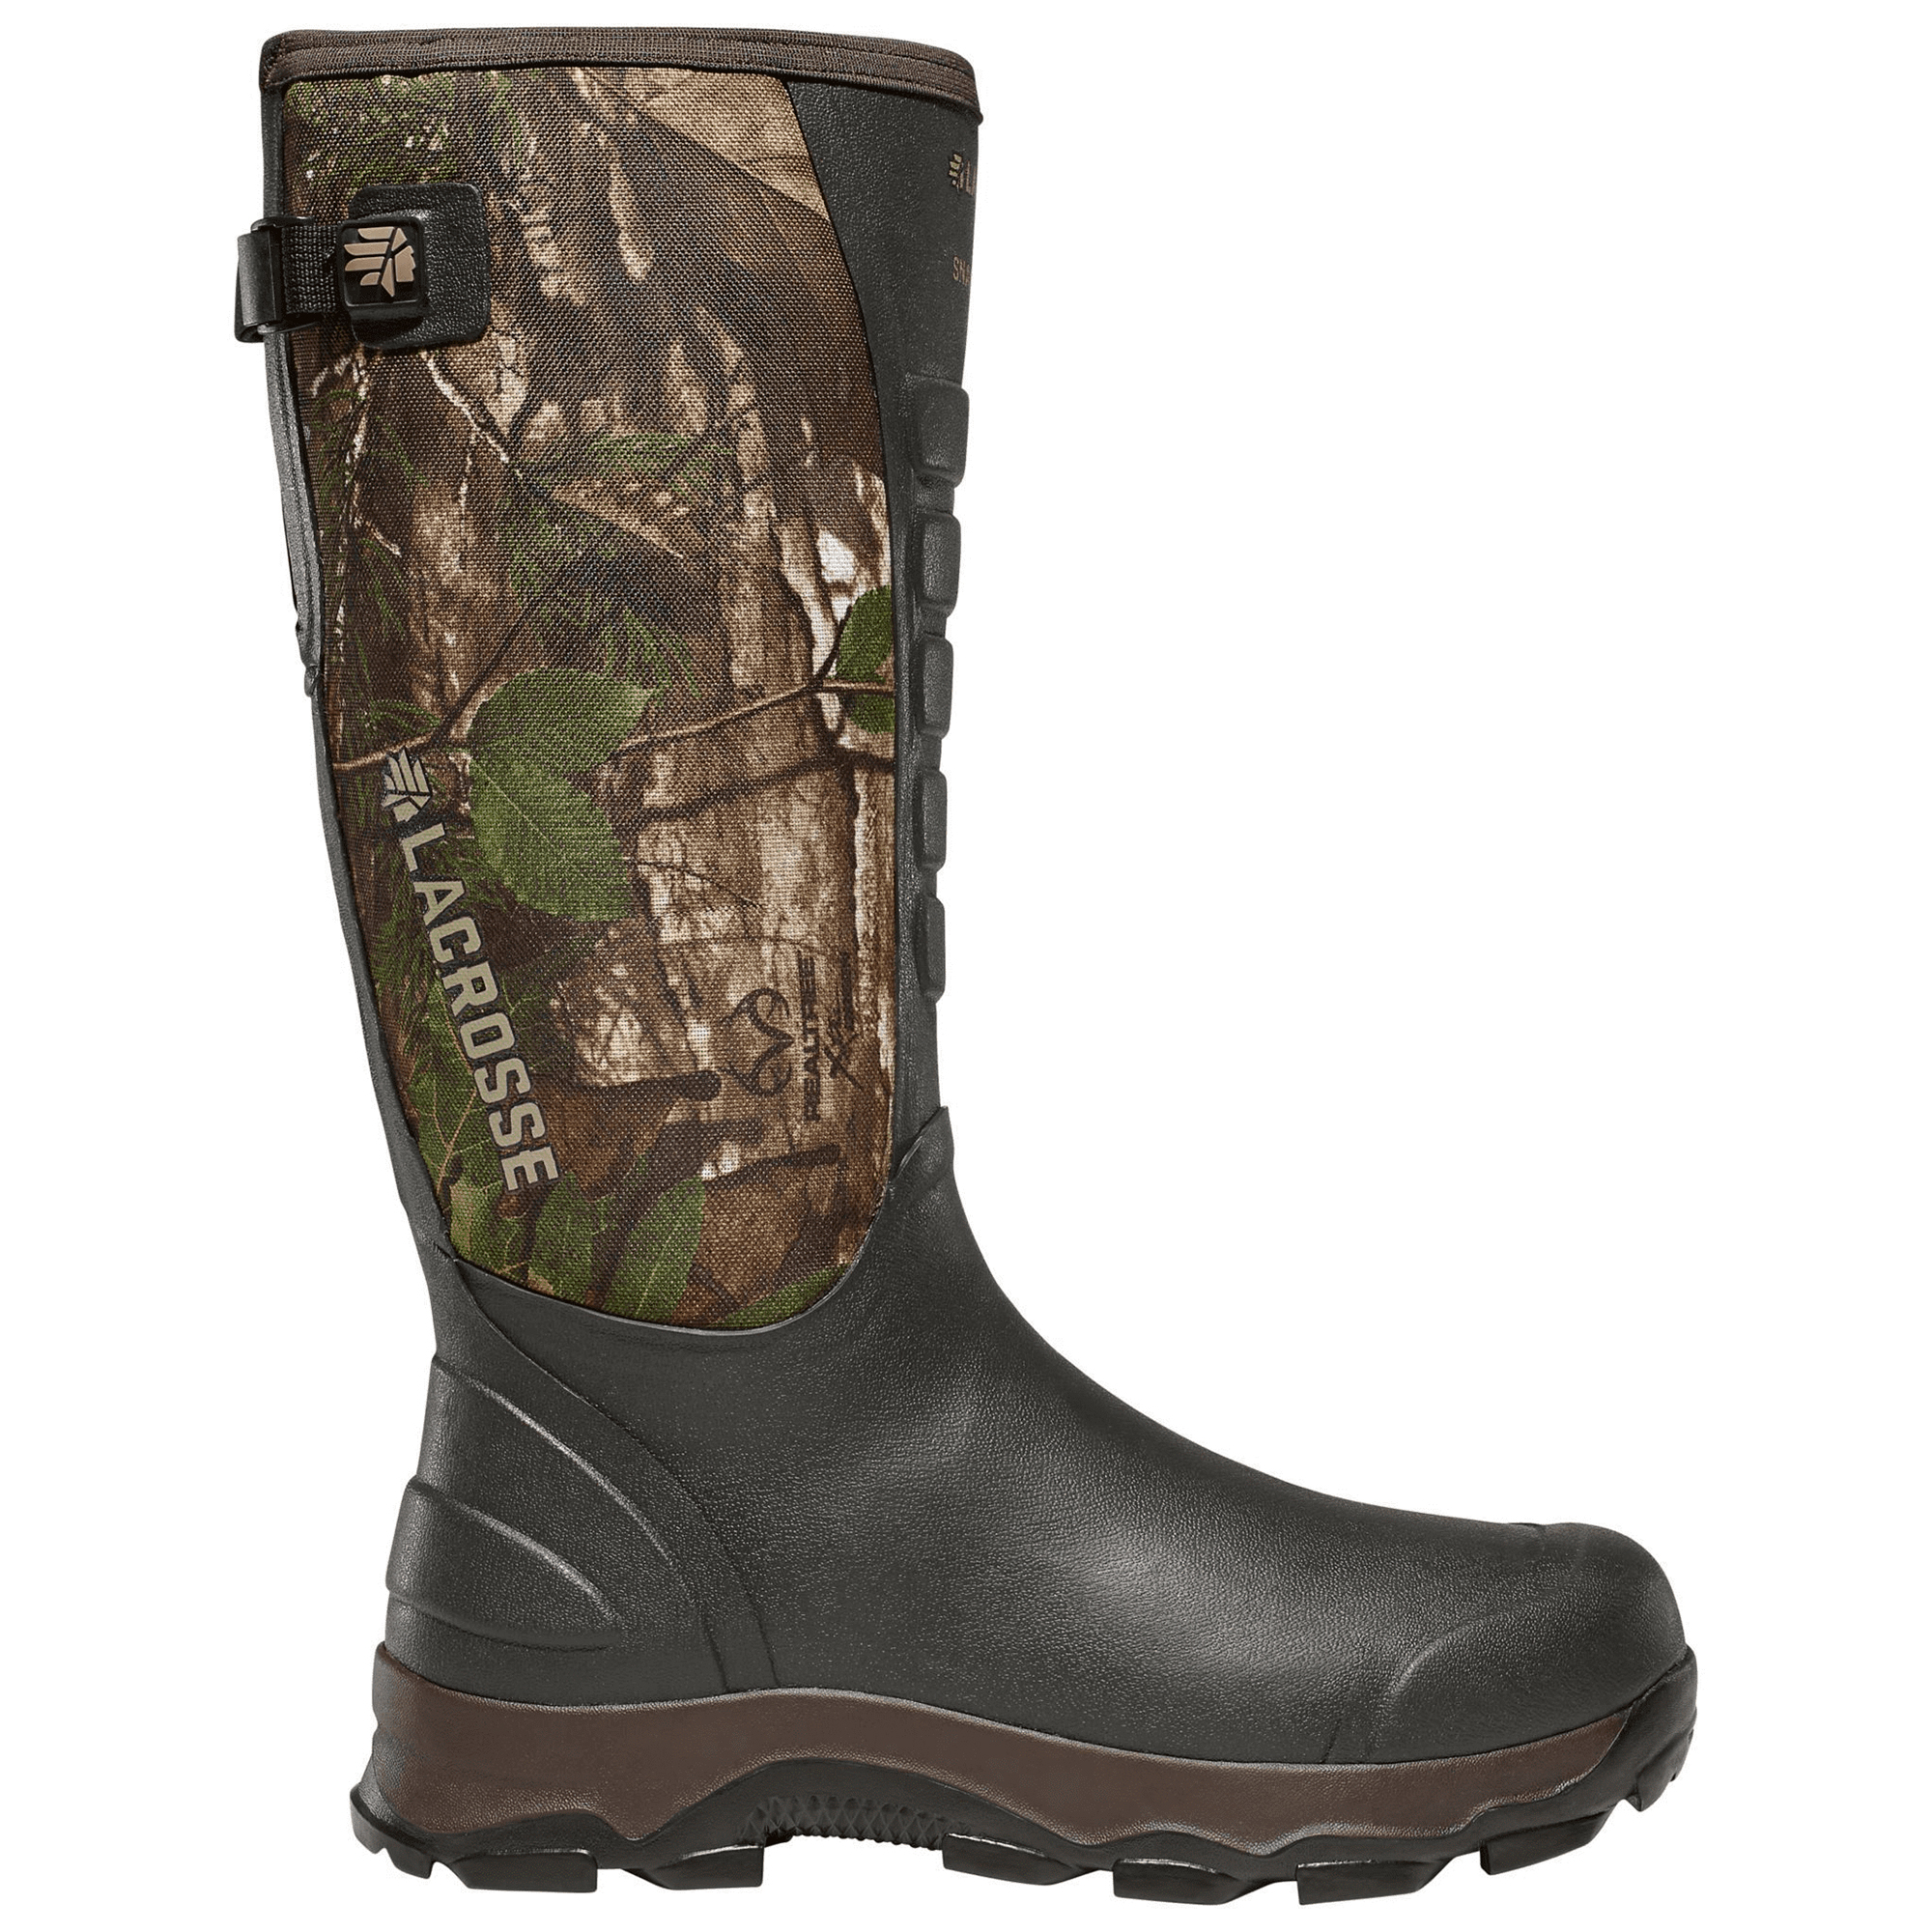 LaCrosse Men's 4xAlpha 16″ Snake Boot, Realtree Xtra Green Camo